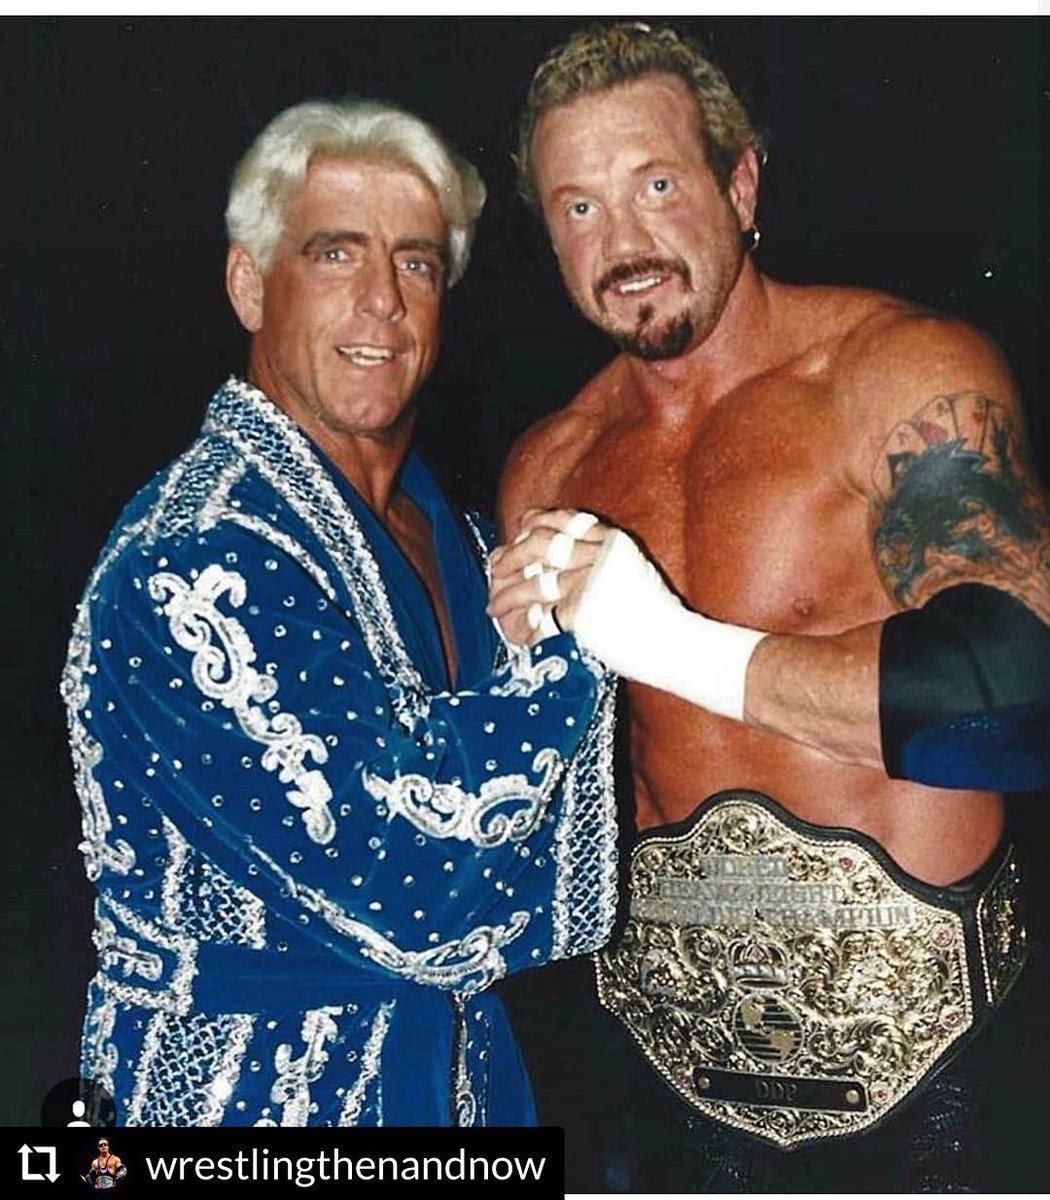 With my boy @RicFlairNatrBoy 💥 WOOO! It's a new week monkeys so it's time to kick some ass, you got this! New week, new you. Consistency over time DELIVERS and by working towards the goals you have set for yourself you will see results.  Be #positivelyunstoppable and #ownIT DDP